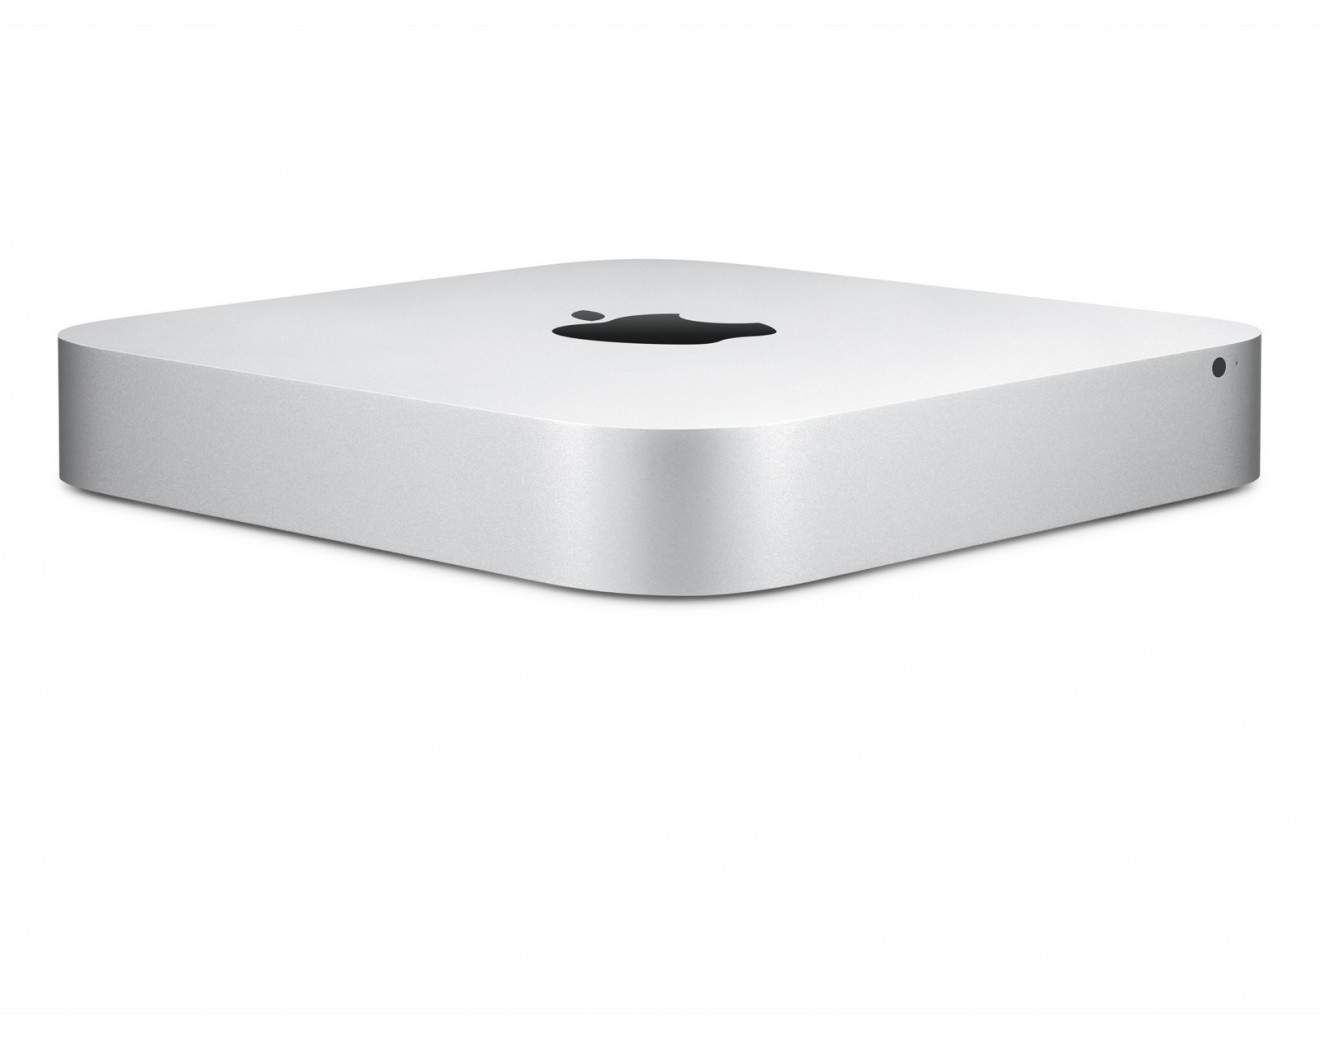 Mac mini Core i5 2.8Ghz (2014)